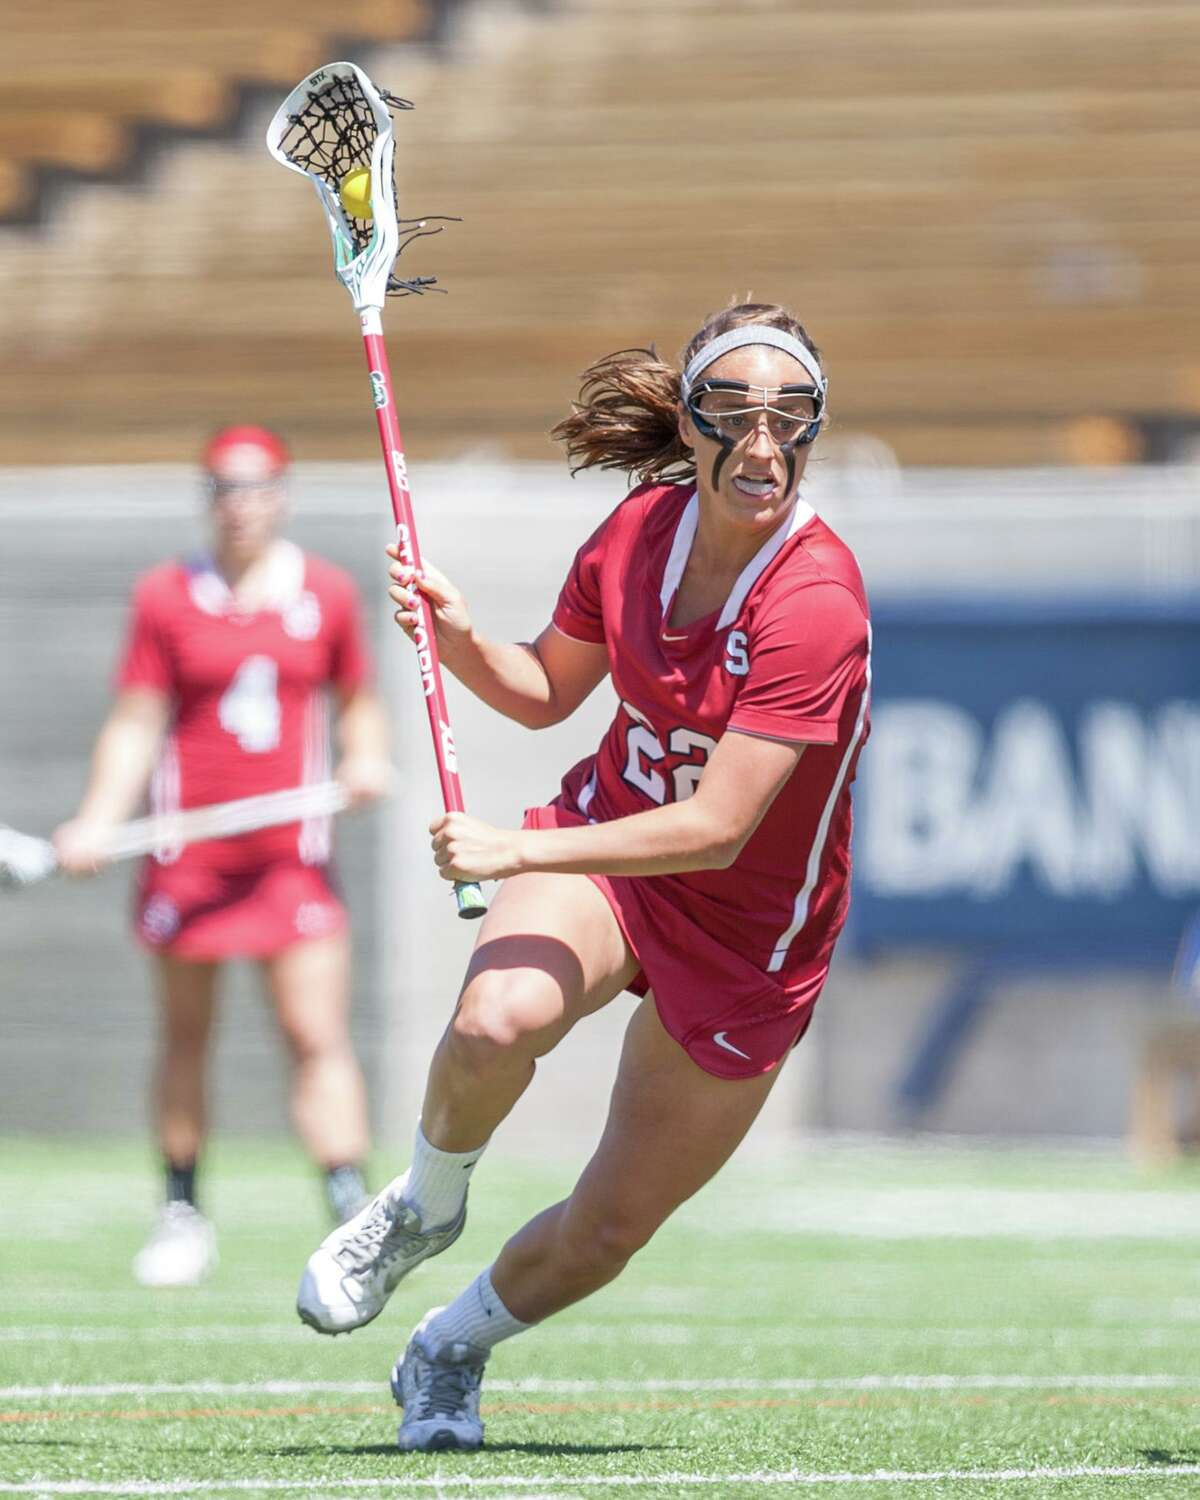 Darien's Dillon Schoen in action during her senior season with the Stanford women's lacrosse team.